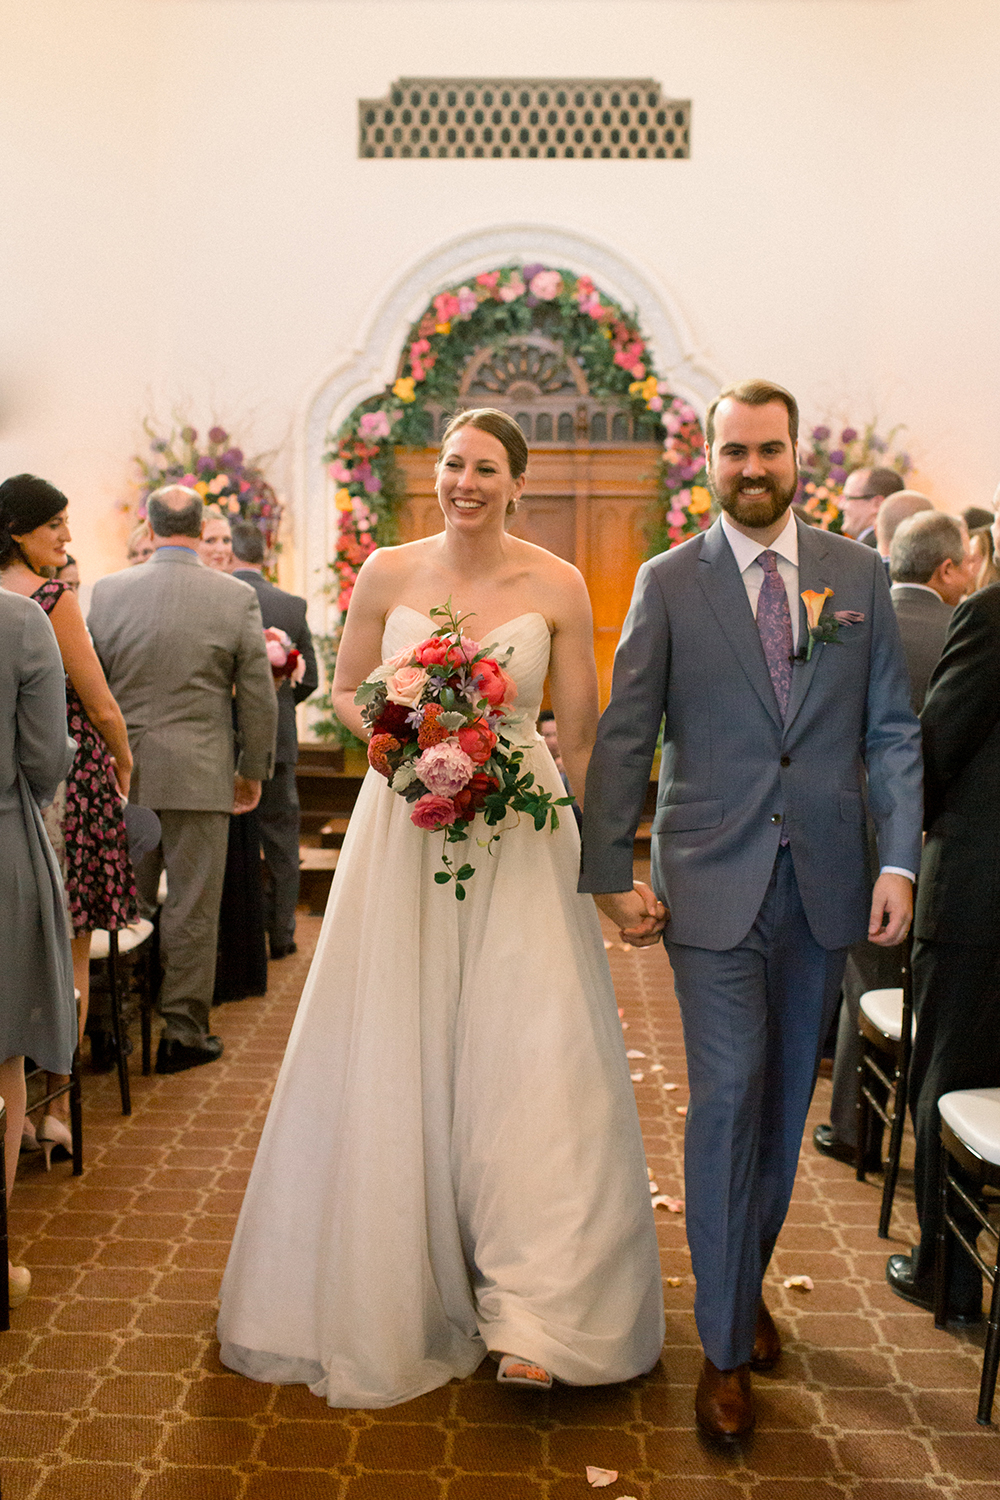 newlywed, ceremony photography, classic spring summer wedding